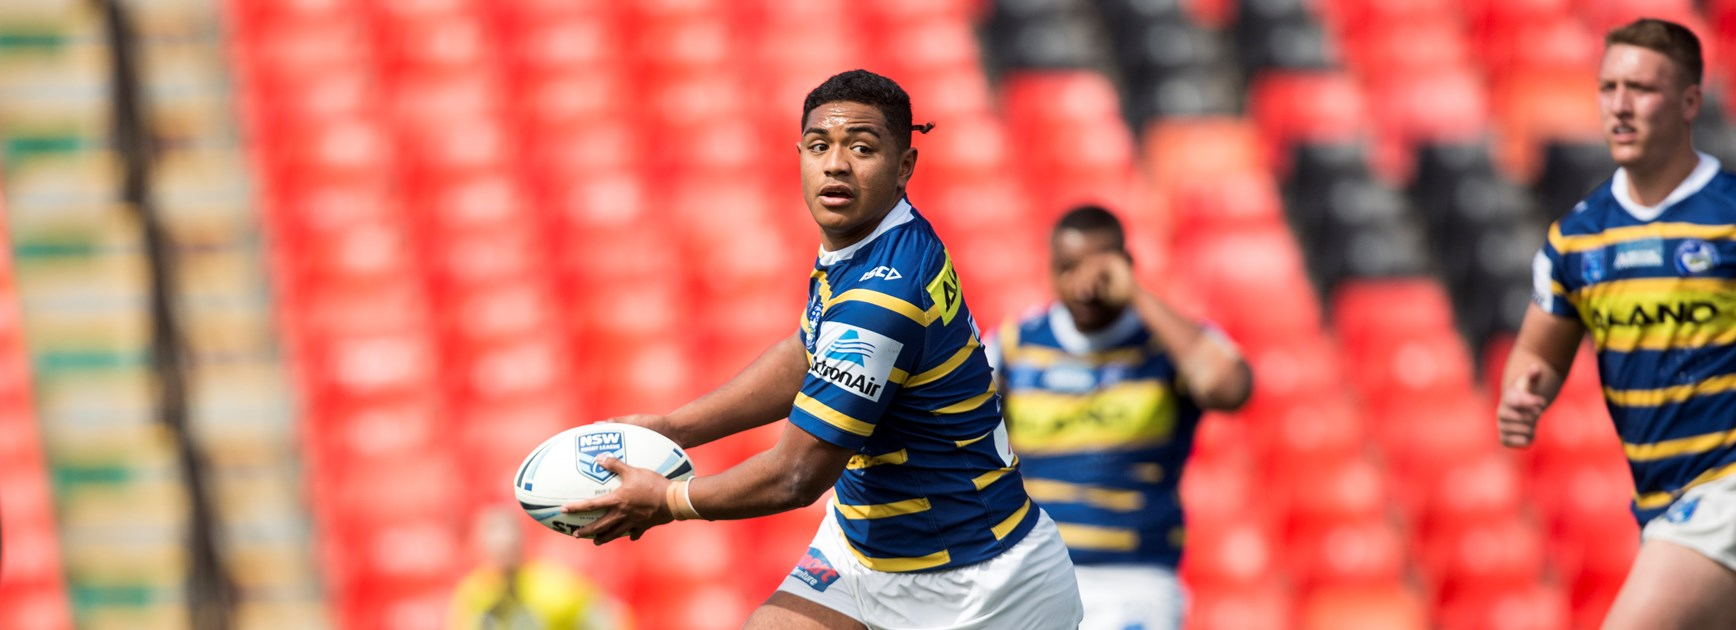 Eels Jersey Flegg's Fonua finalist for trainee of the year